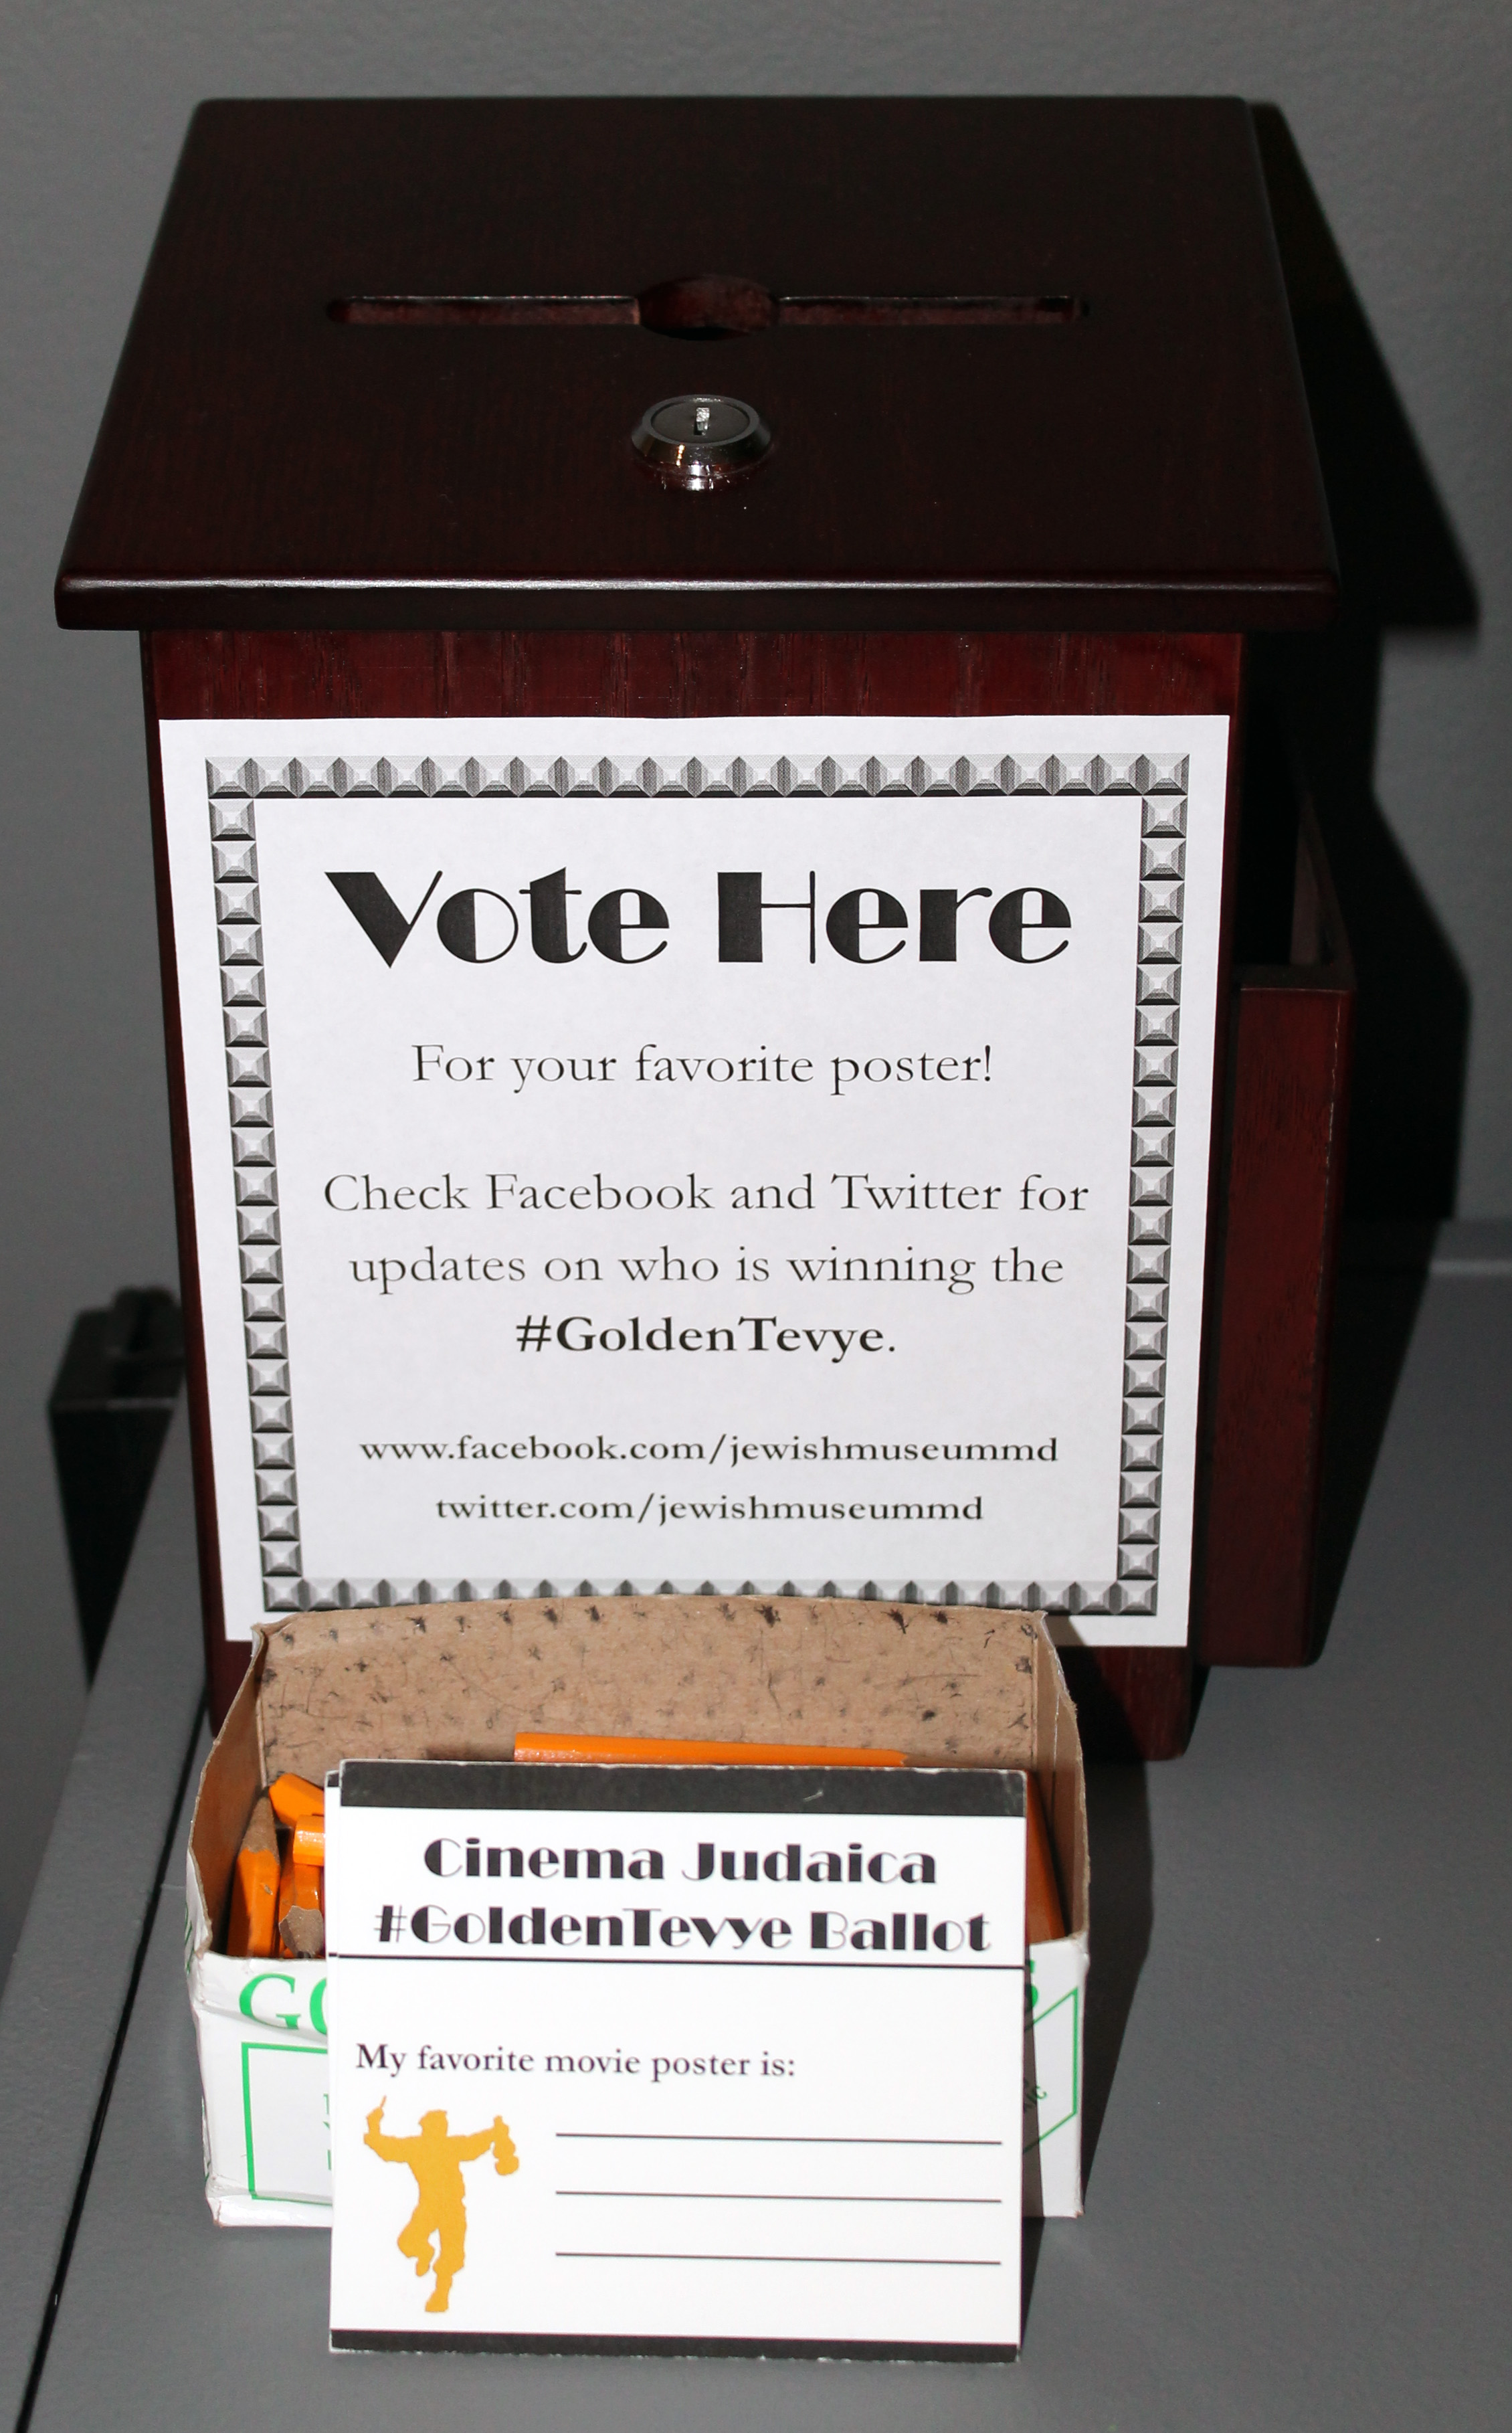 The #GoldenTevye voting box.